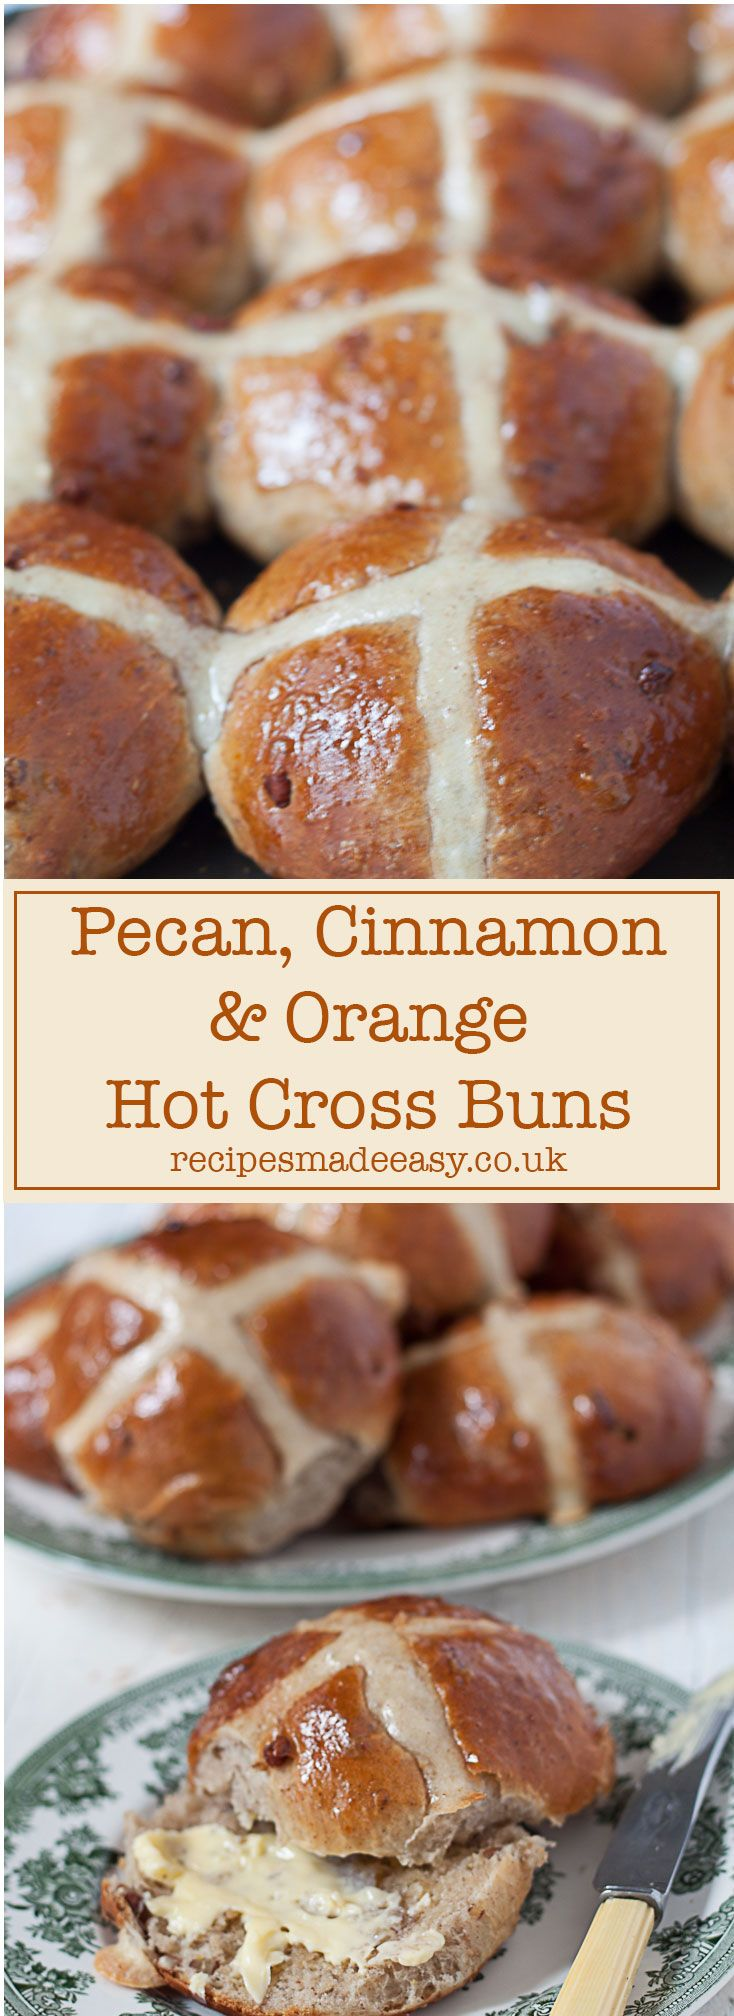 Celebrate Easter with these Pecan, Cinnamon and Orange Hot Cross Buns - A delicious nutty alternative to traditional Hot Cross Buns. via @jacdotbee